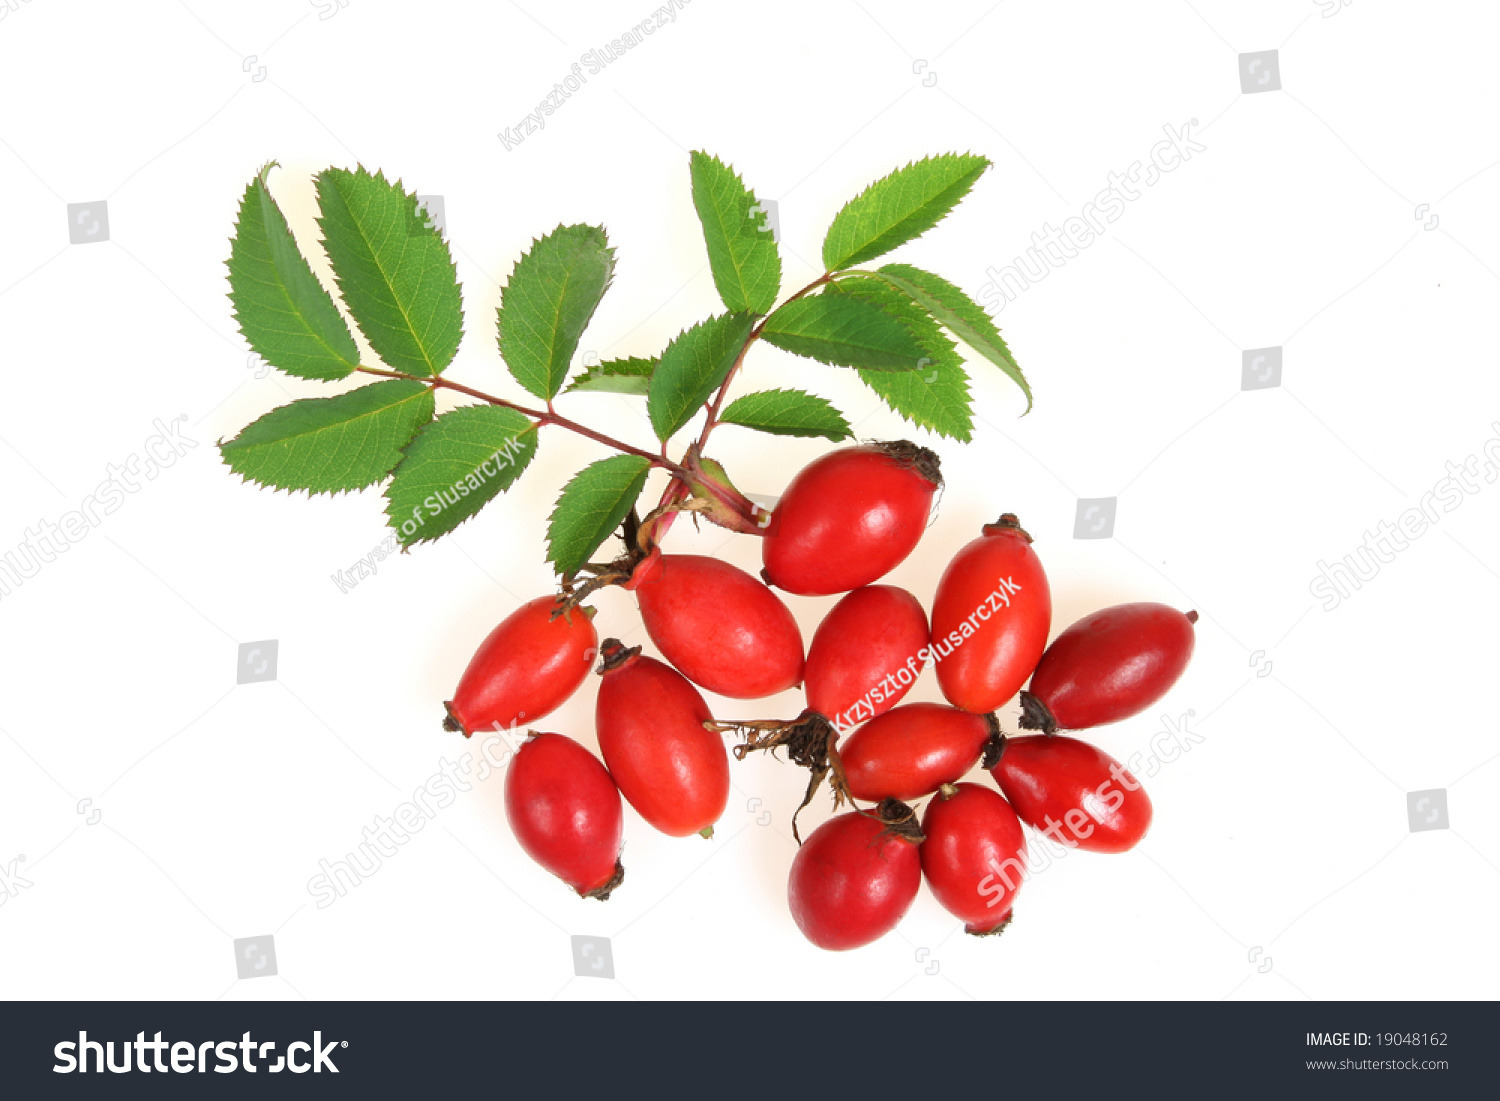 meet whitethorn singles A deciduous small tree to twenty feet, with clusters of white flowers in mid-spring, small red berries in autumn, lasting to late winter the small leaves are divided into three to seven lobes.